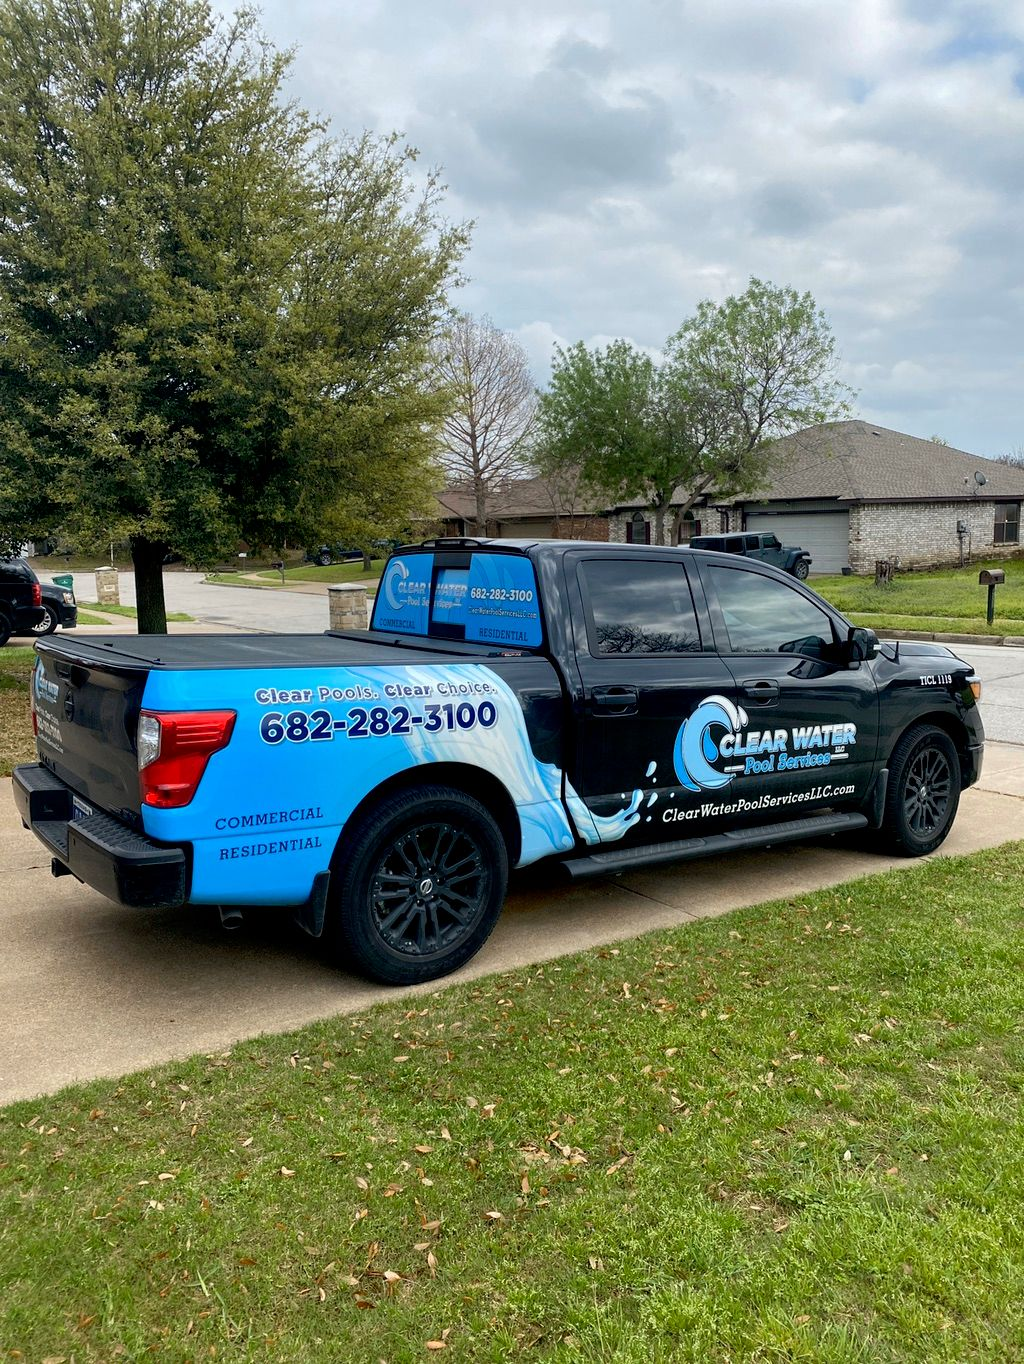 Clear Water Pool Services LLC